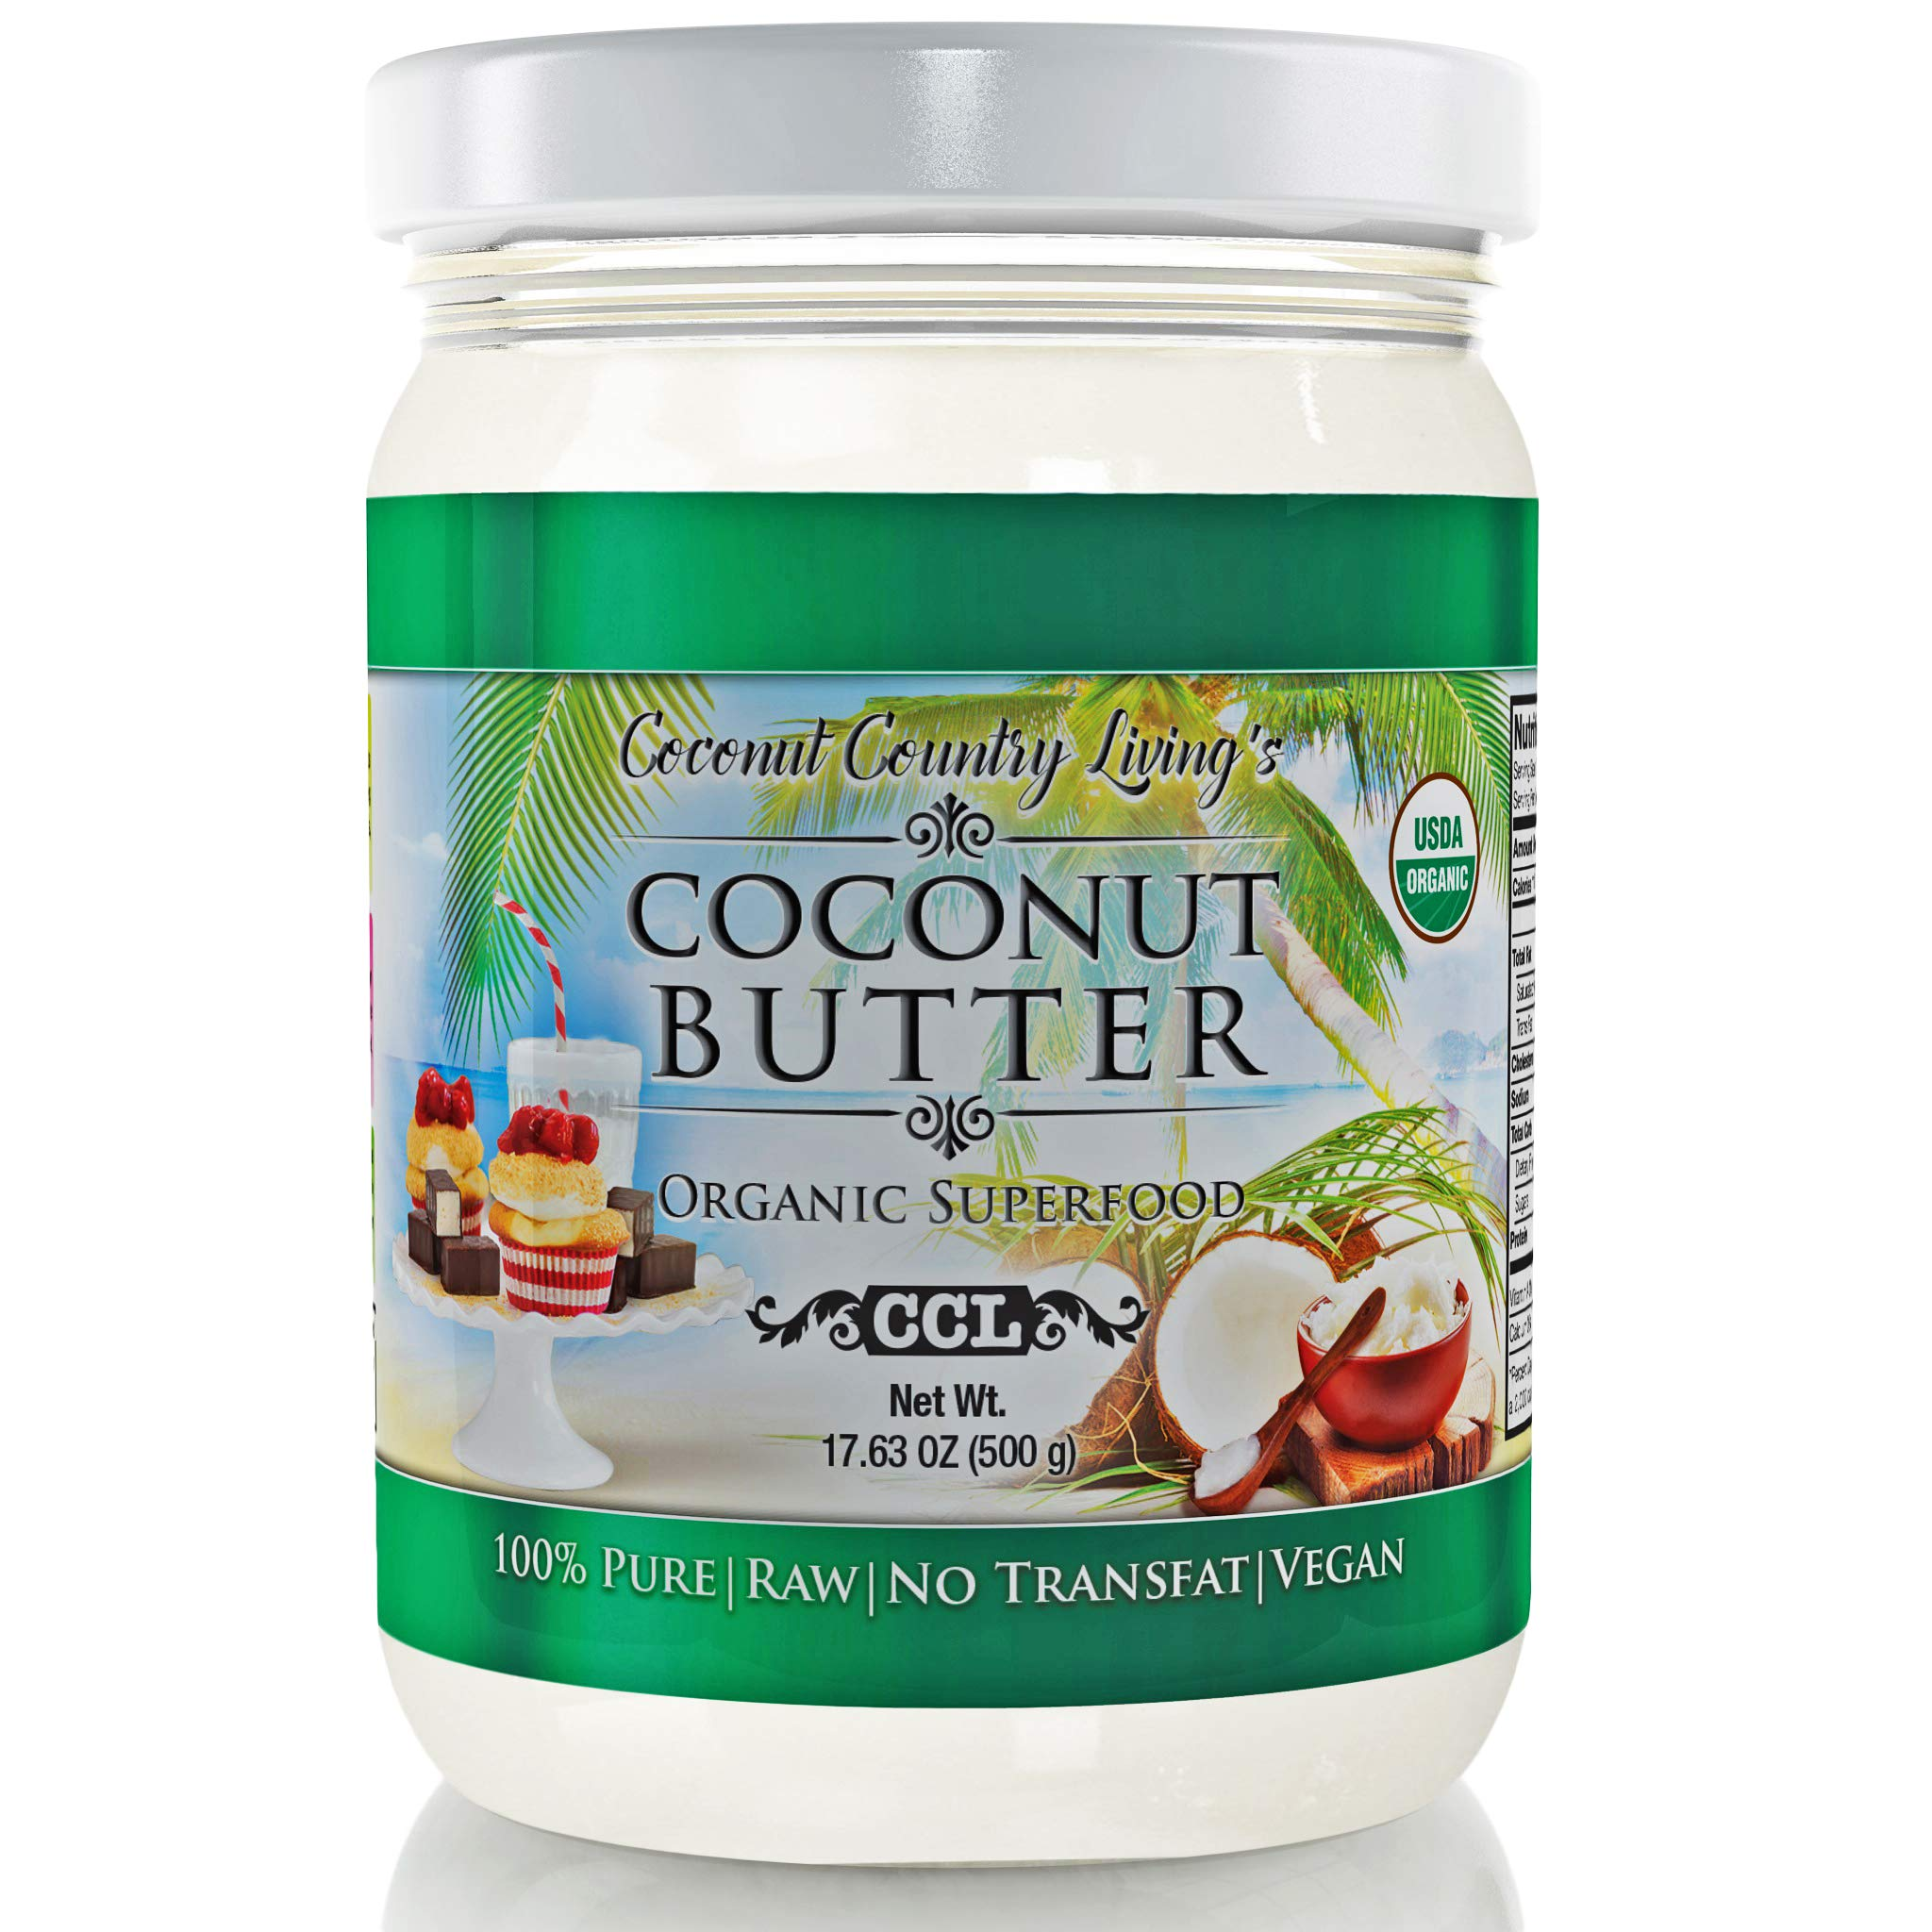 Organic Coconut Butter 2 Pack 17.6 oz each Stone Ground Pureed w/E-Book of Organic Gourmet Keto Paleo Friendly Recipes by Coconut Country Living